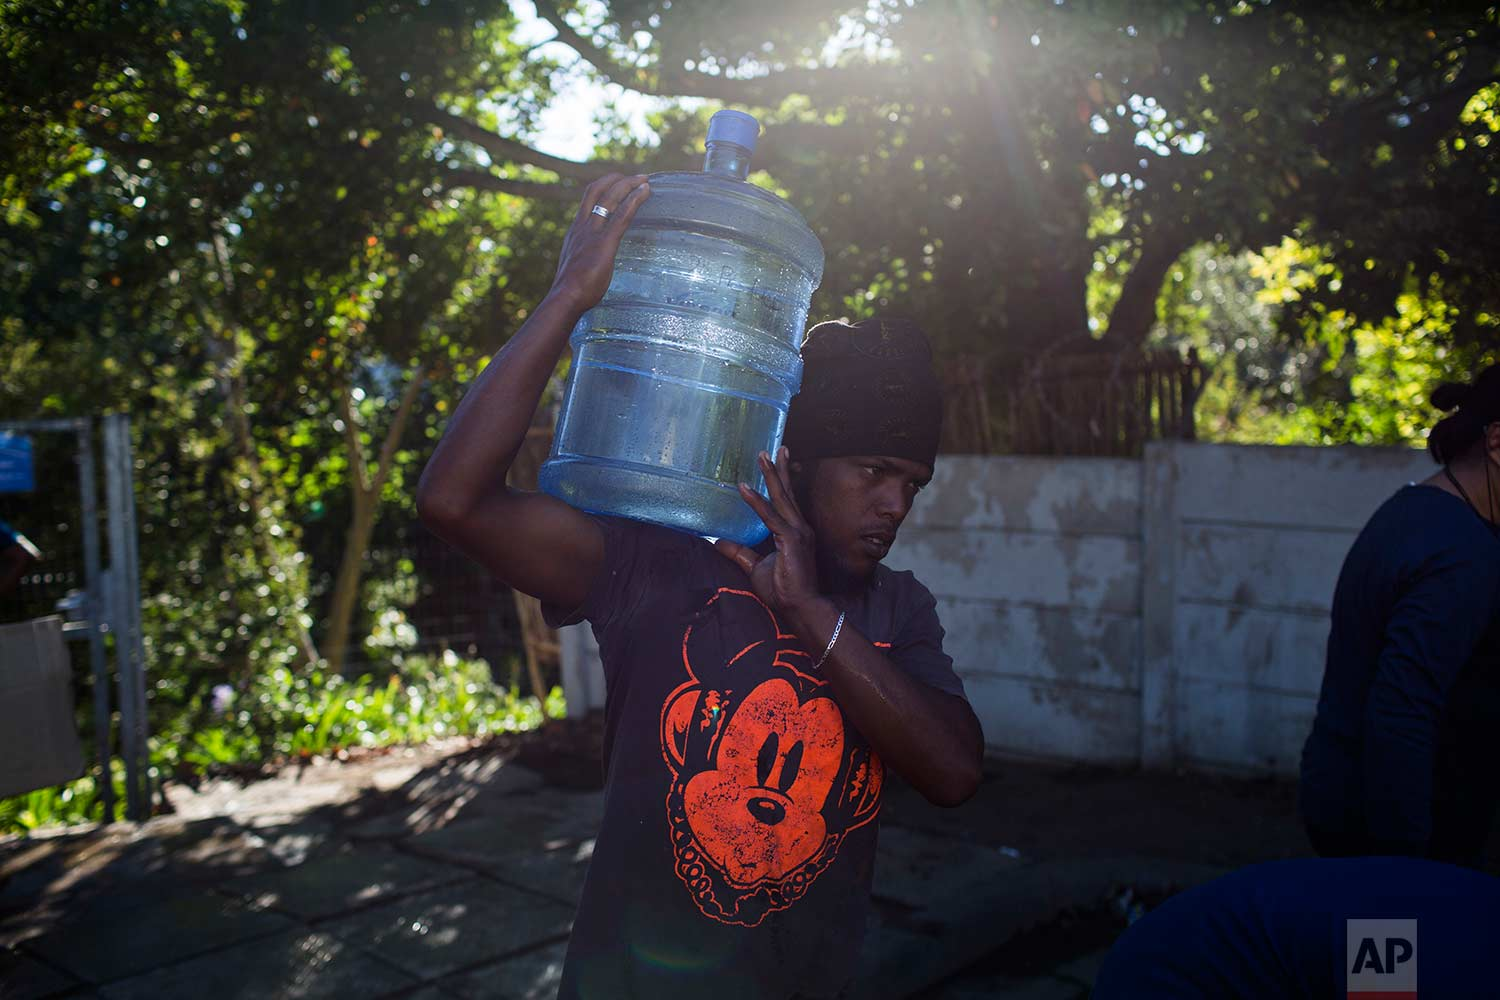 A man carries water at a source for natural spring water in Cape Town, Thursday, Feb. 1, 2018. (AP Photo/Bram Janssen)